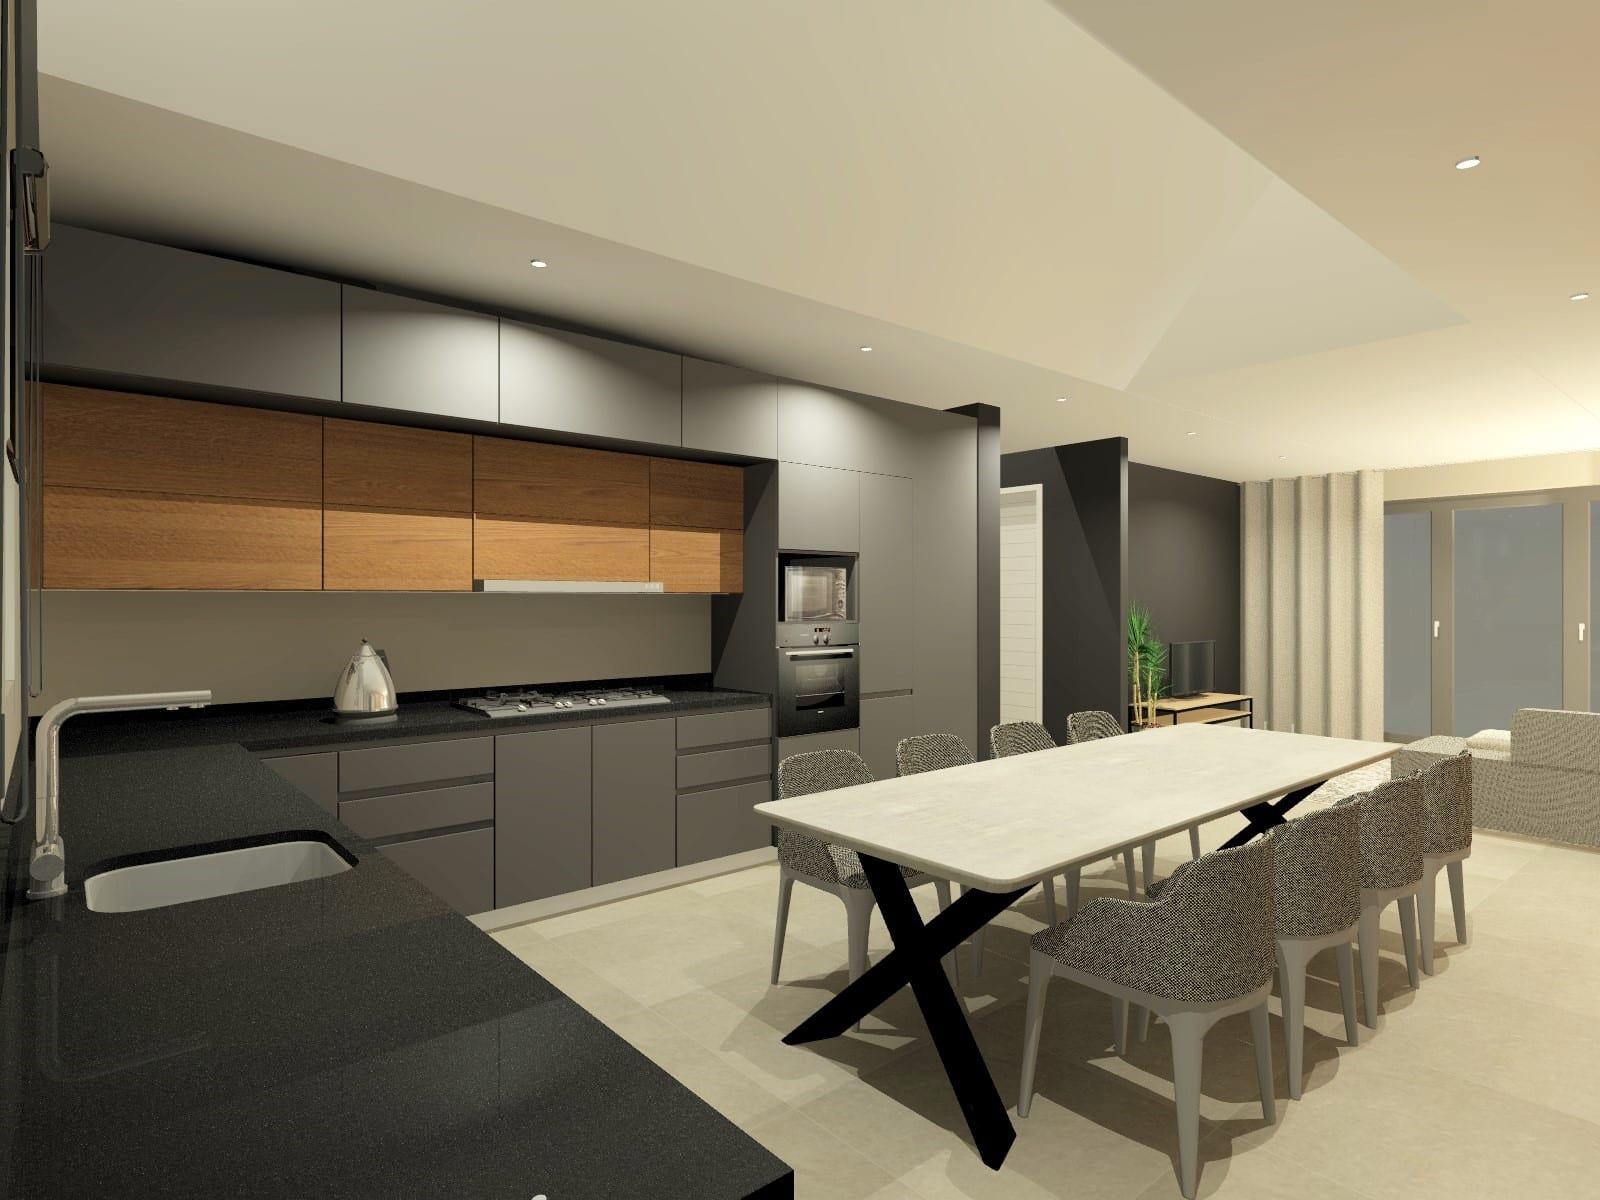 Simplex Kitchen Scullery_Perspective 7_Rendered